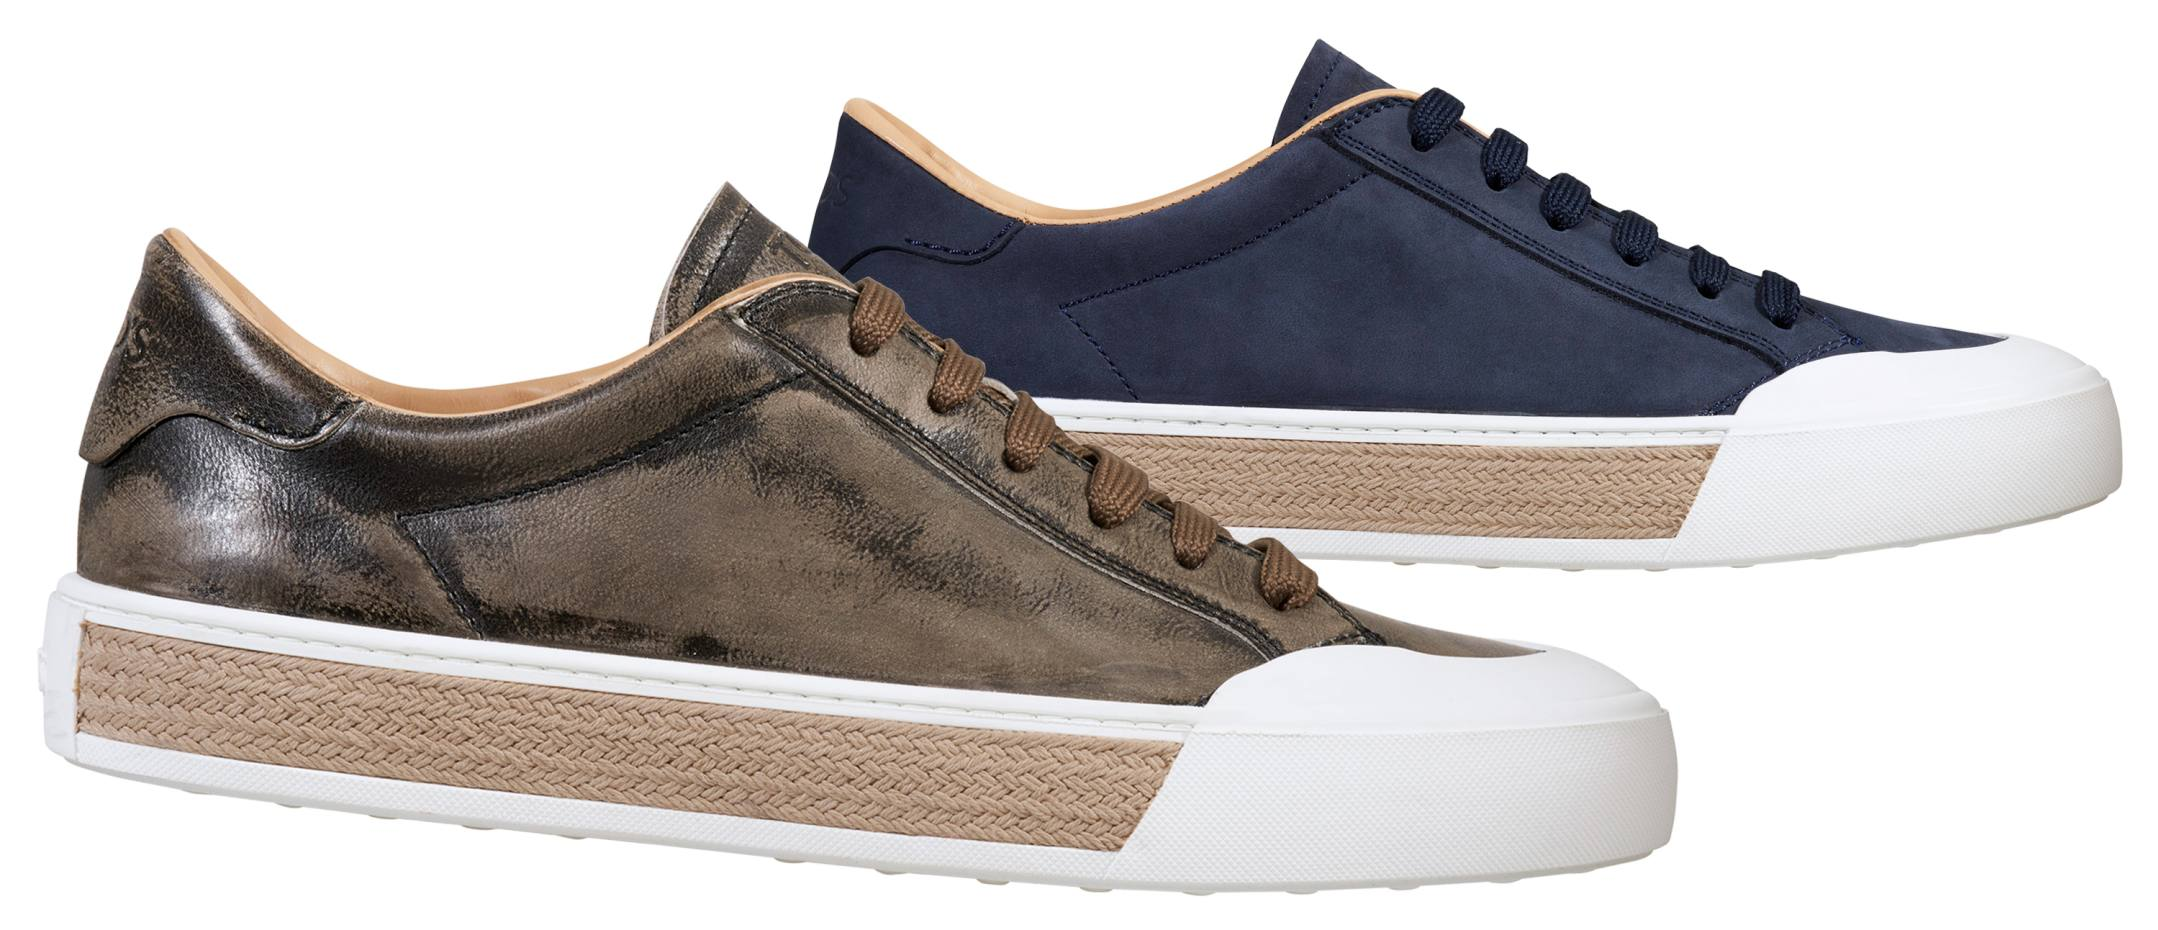 """From left: Tod's Sportivo sneaker in washed calfskin """"chrome"""" tanned leather, £375. In muted navy suede, £330"""